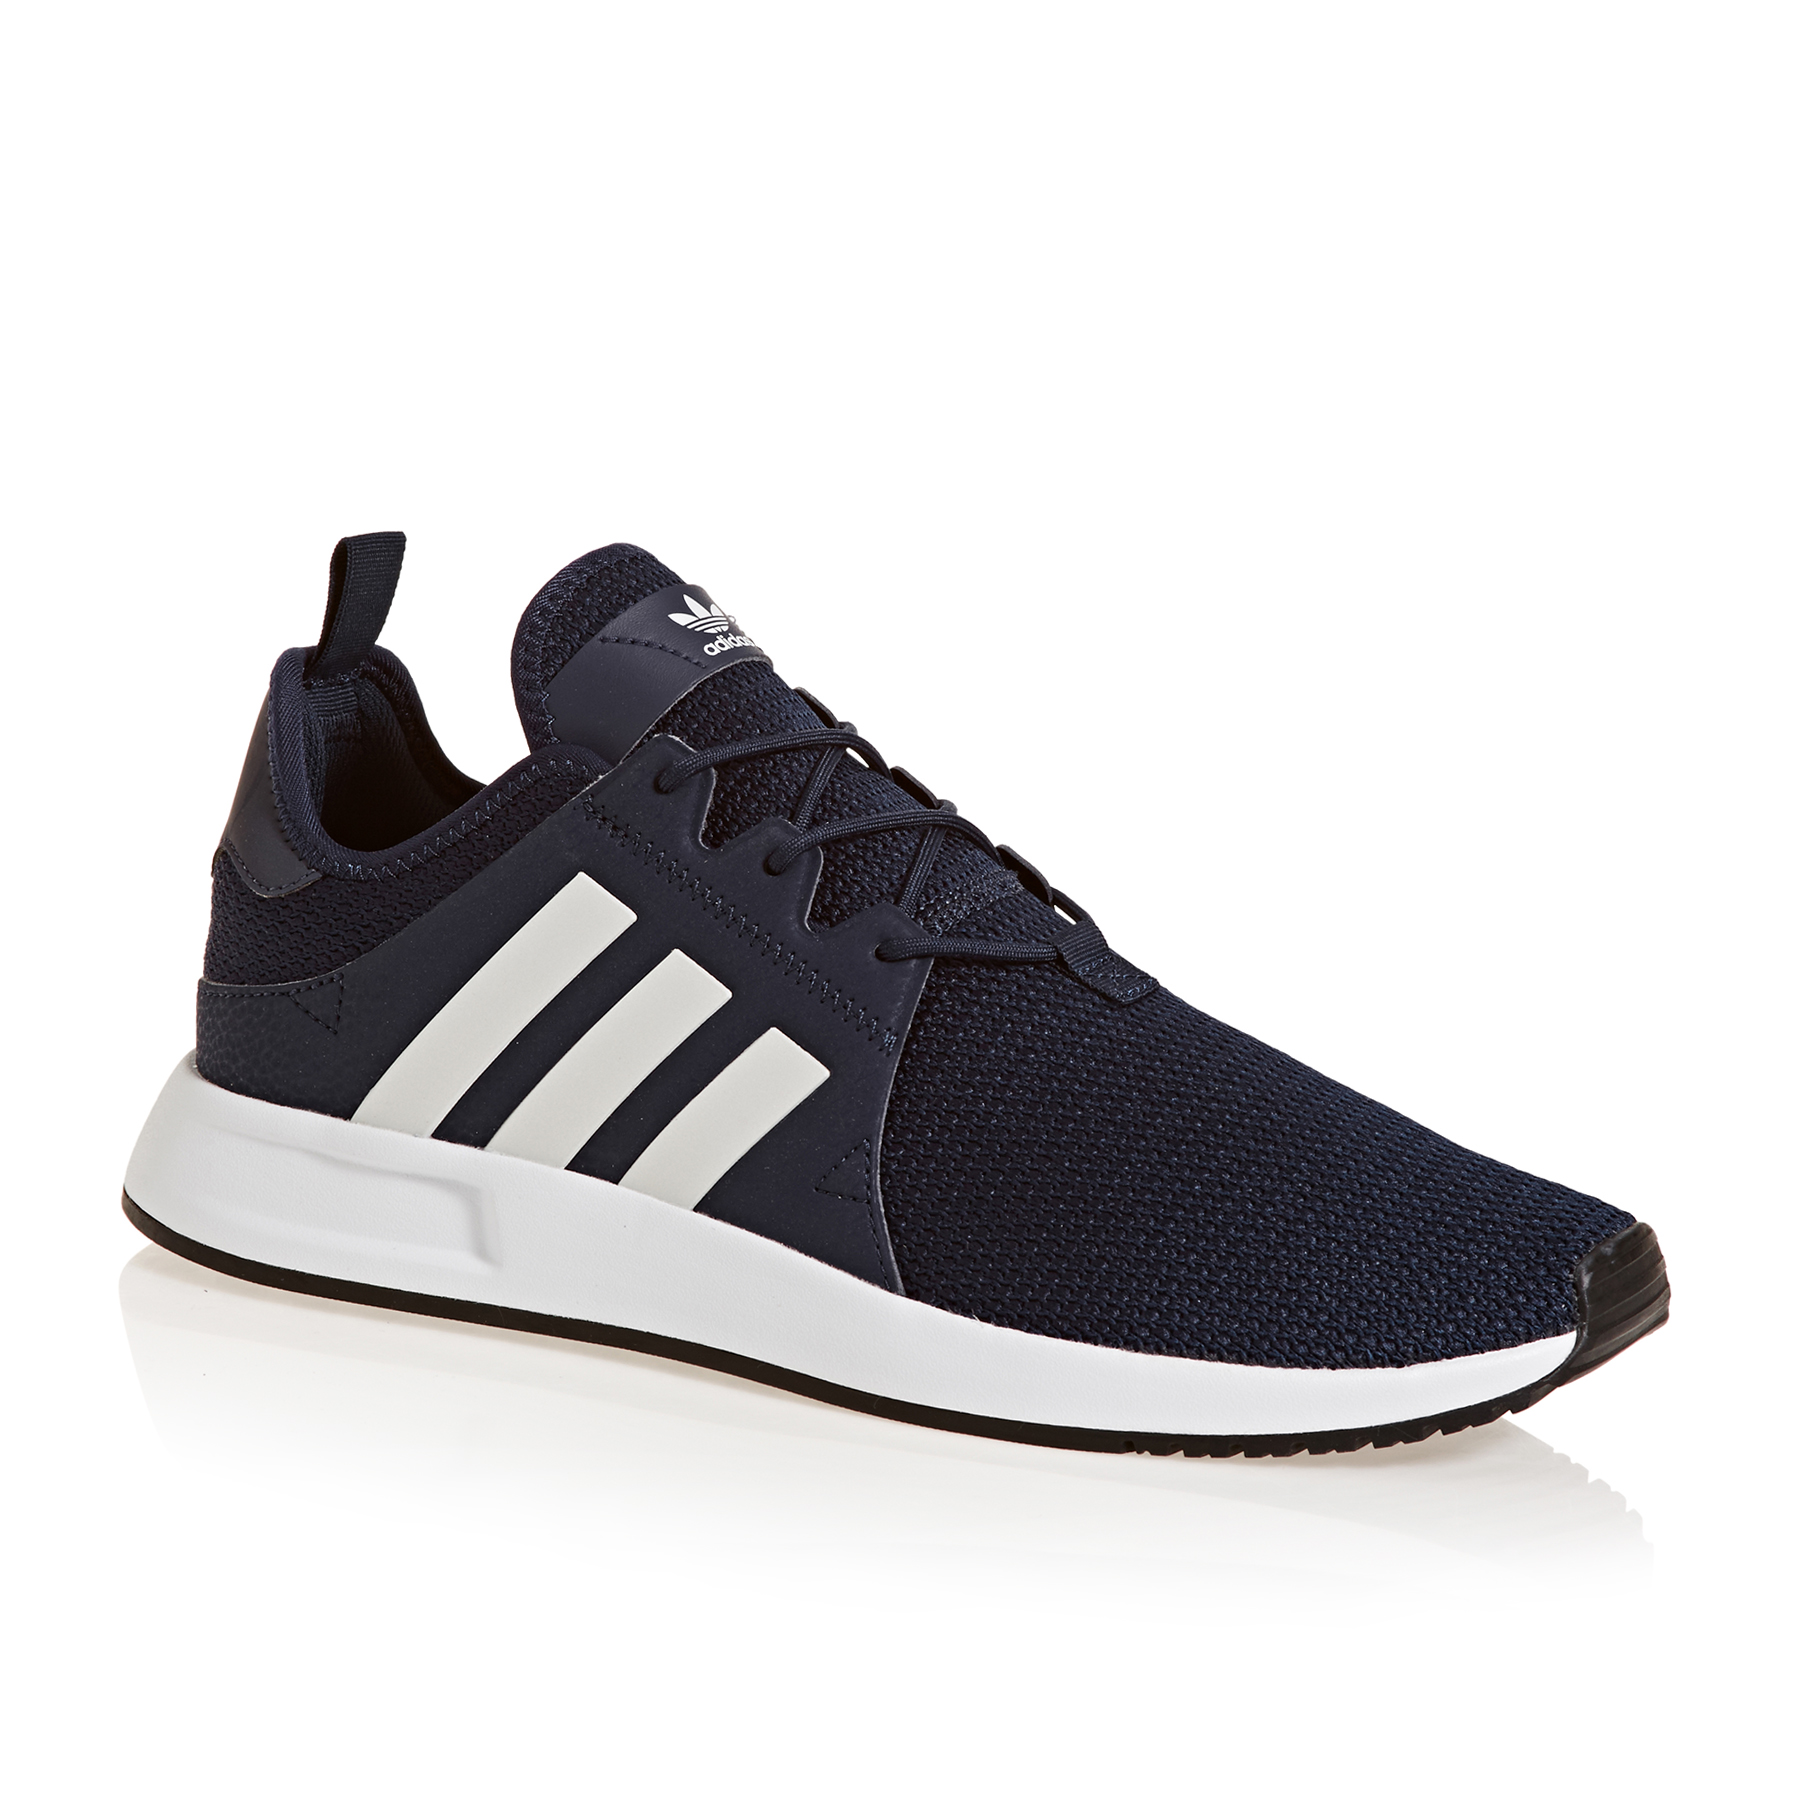 Adidas Originals Xplr Shoes Free Delivery options on All